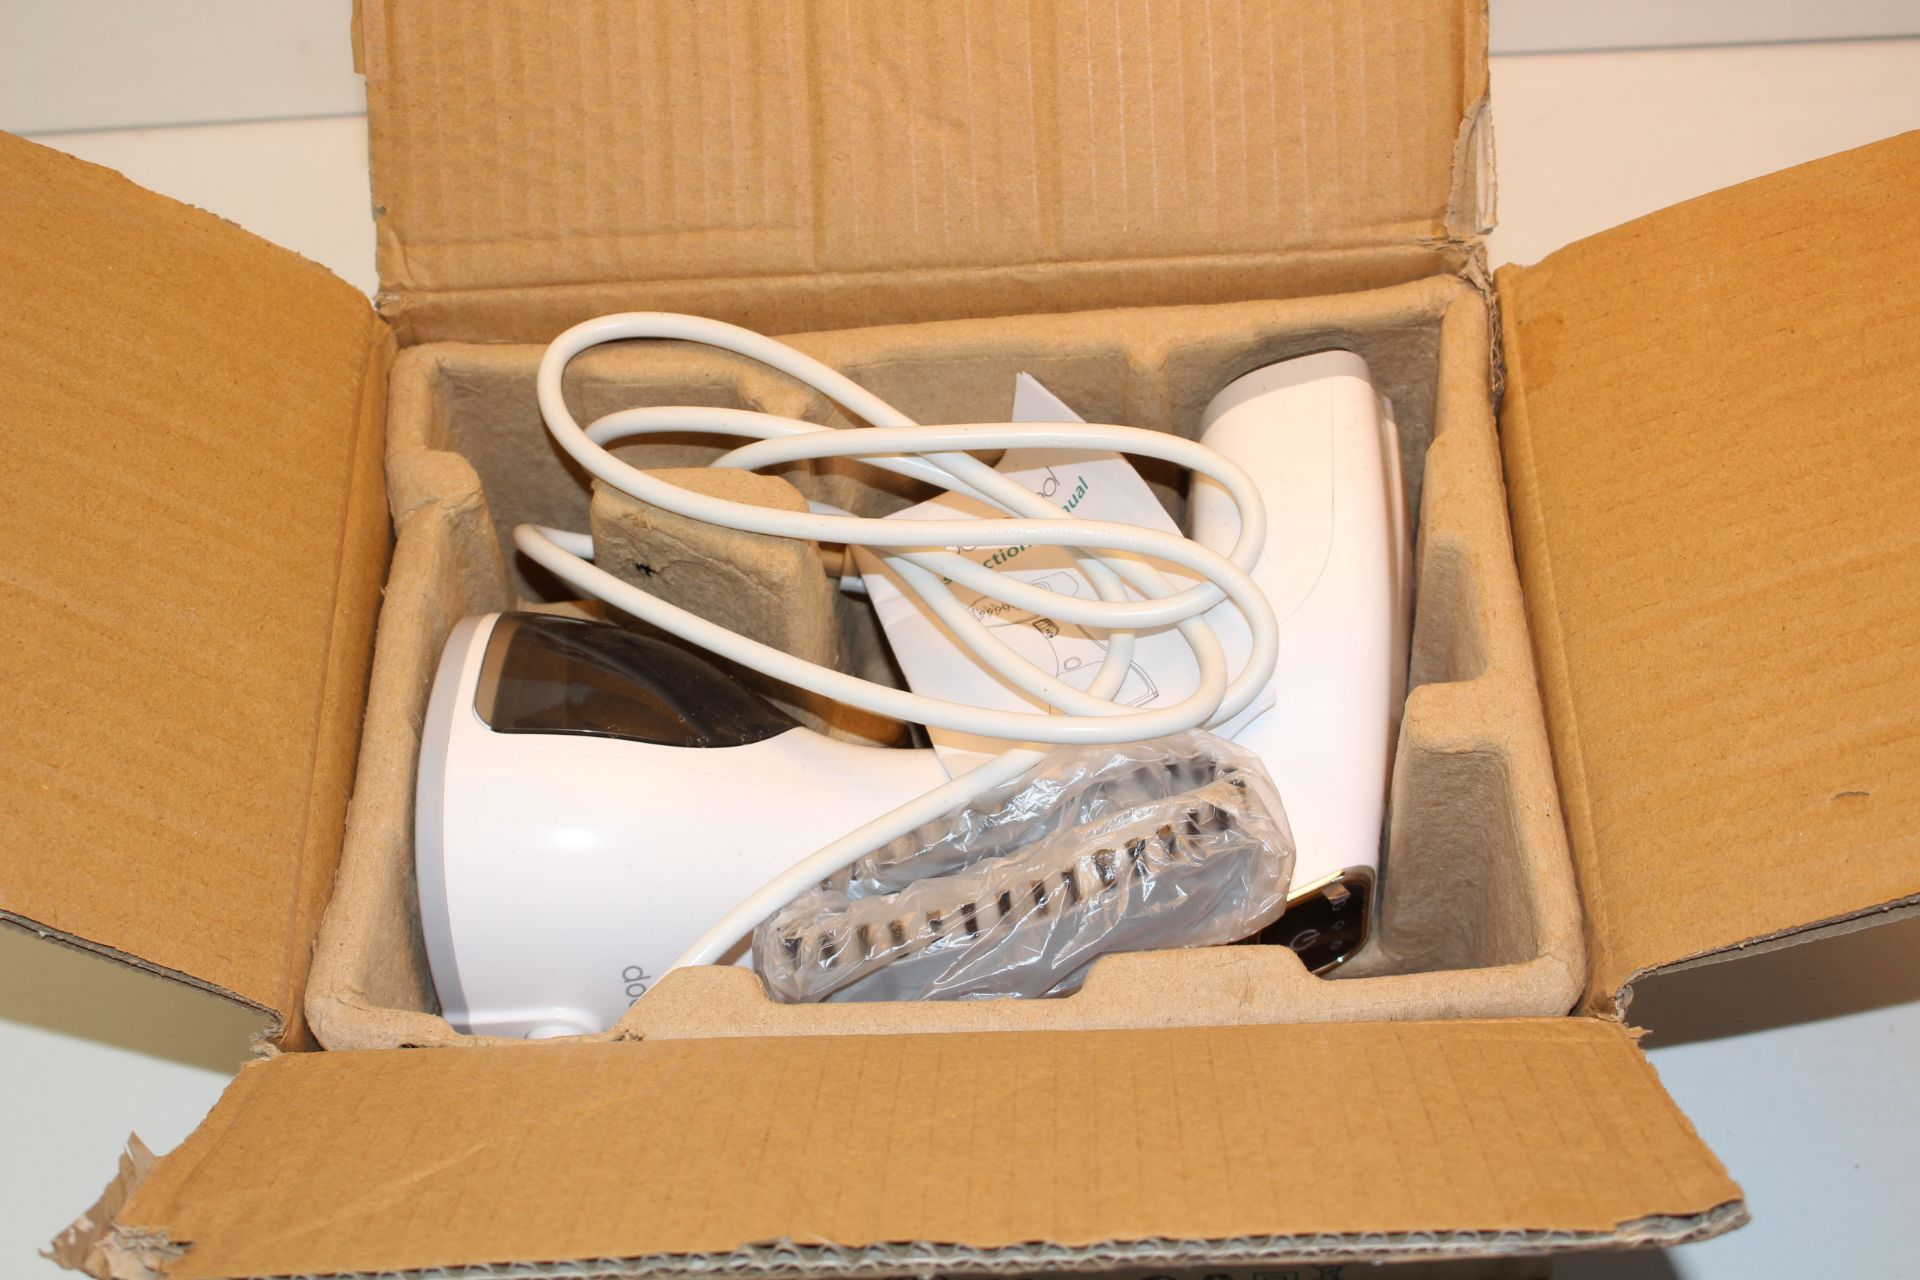 BOXED DODOCOOL LCD HANDHELD GARMENT STEAMERCondition ReportAppraisal Available on Request- All Items